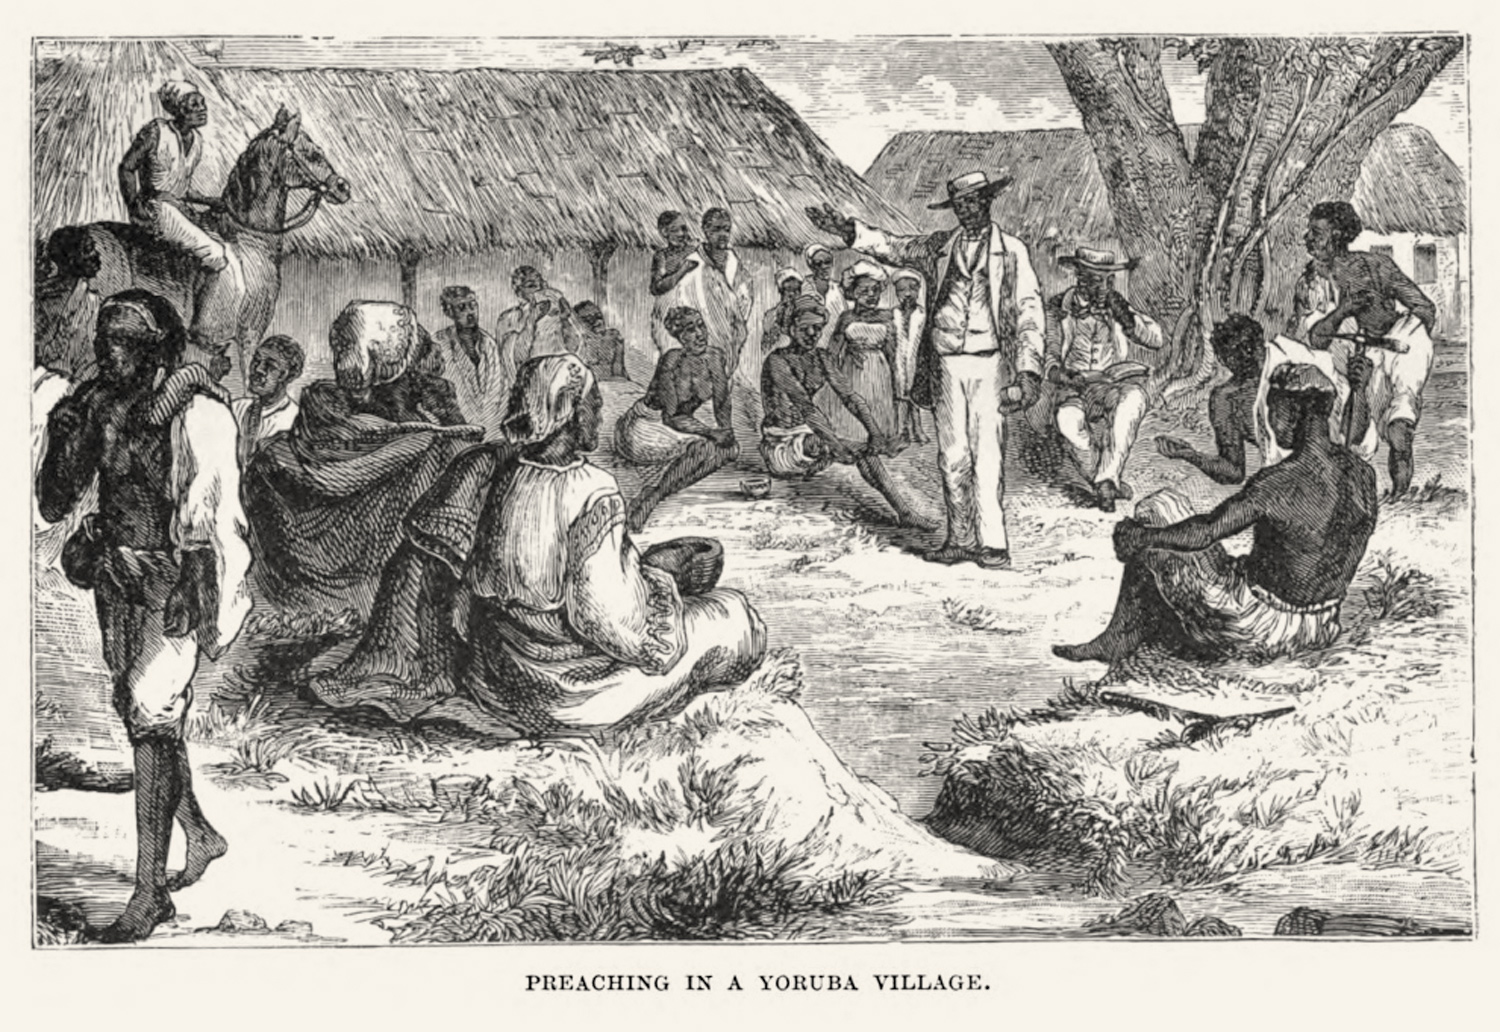 The CMS publications contain many beautiful illustrations from missionary life in Yorùbá-land. Usually they were produced by artists in Europe, based on the descriptions of the missionaries. Image Public Domain.